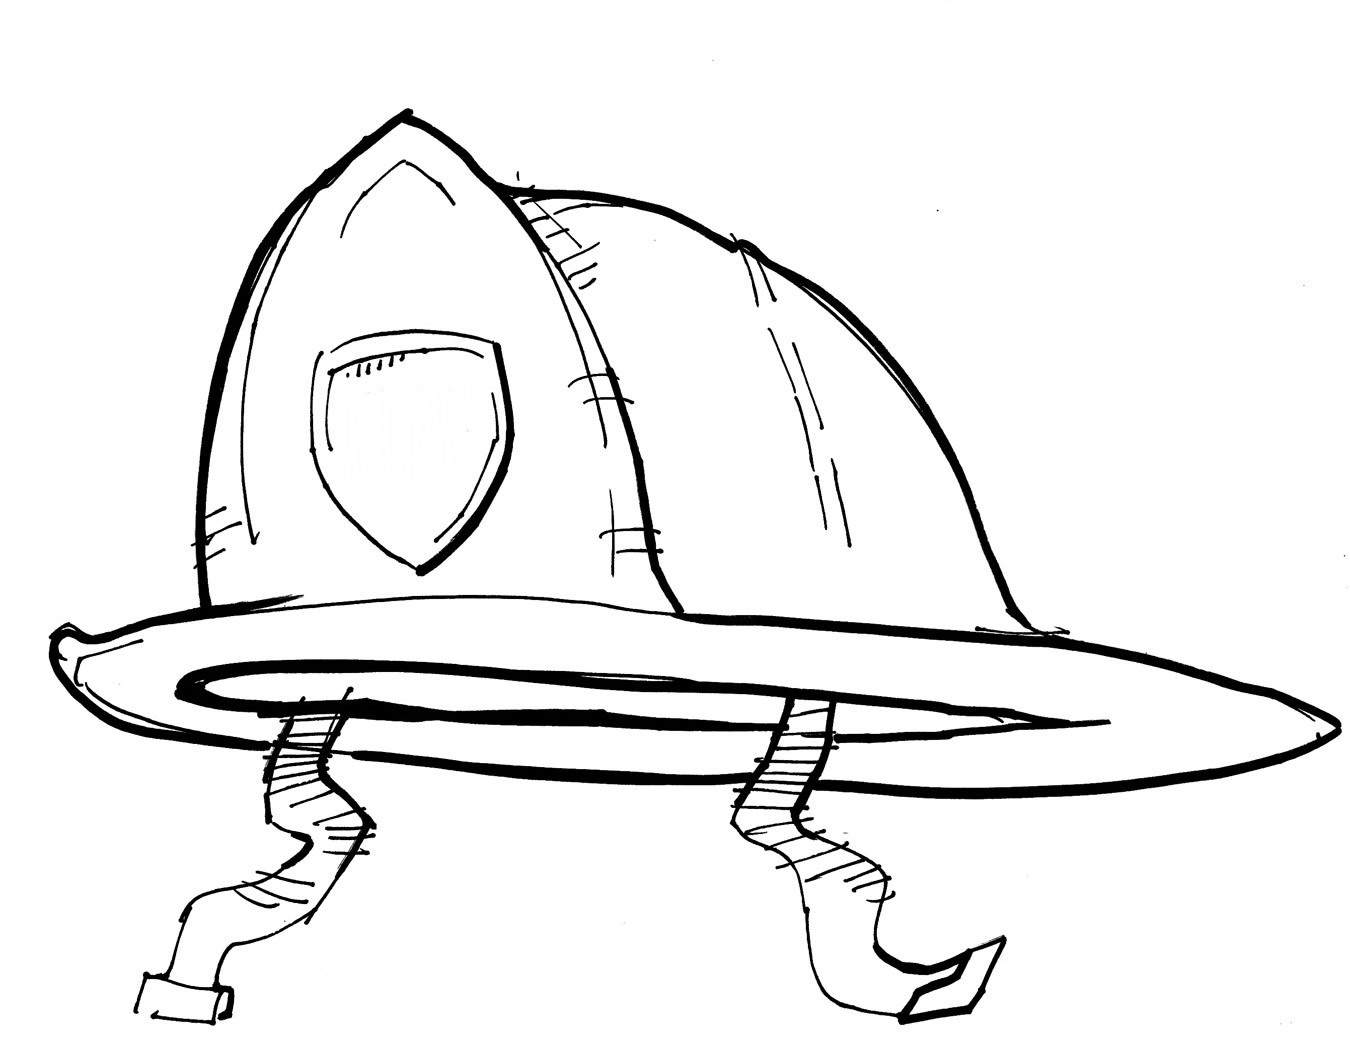 1350x1050 Hard Hat Coloring Page With Wallpaper Laptop Mayapurjacouture Hat